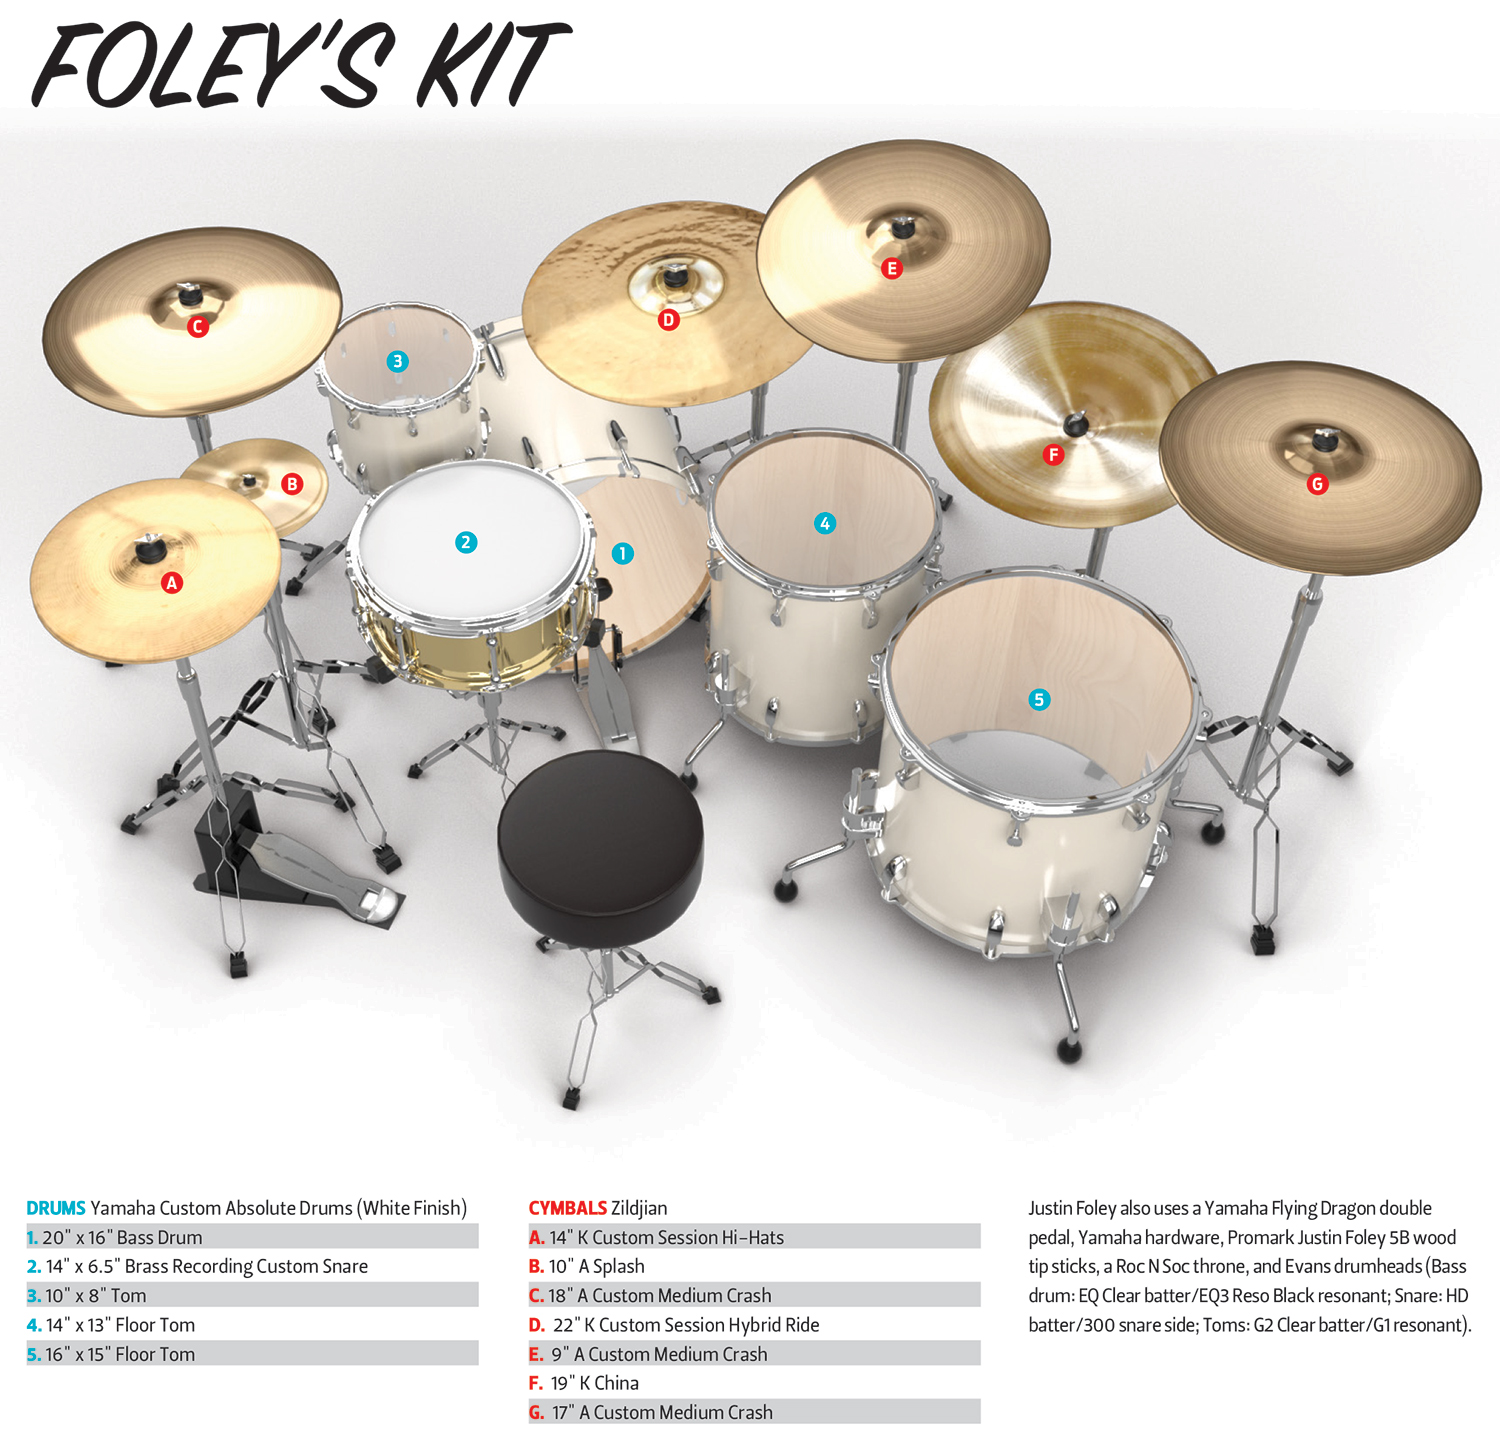 A Man Pushing Drum Diagram Complete Wiring Diagrams Set Charlie Benante And Justin Foley Talk About Life On The Road Rh Drummagazine Com Snare Setup